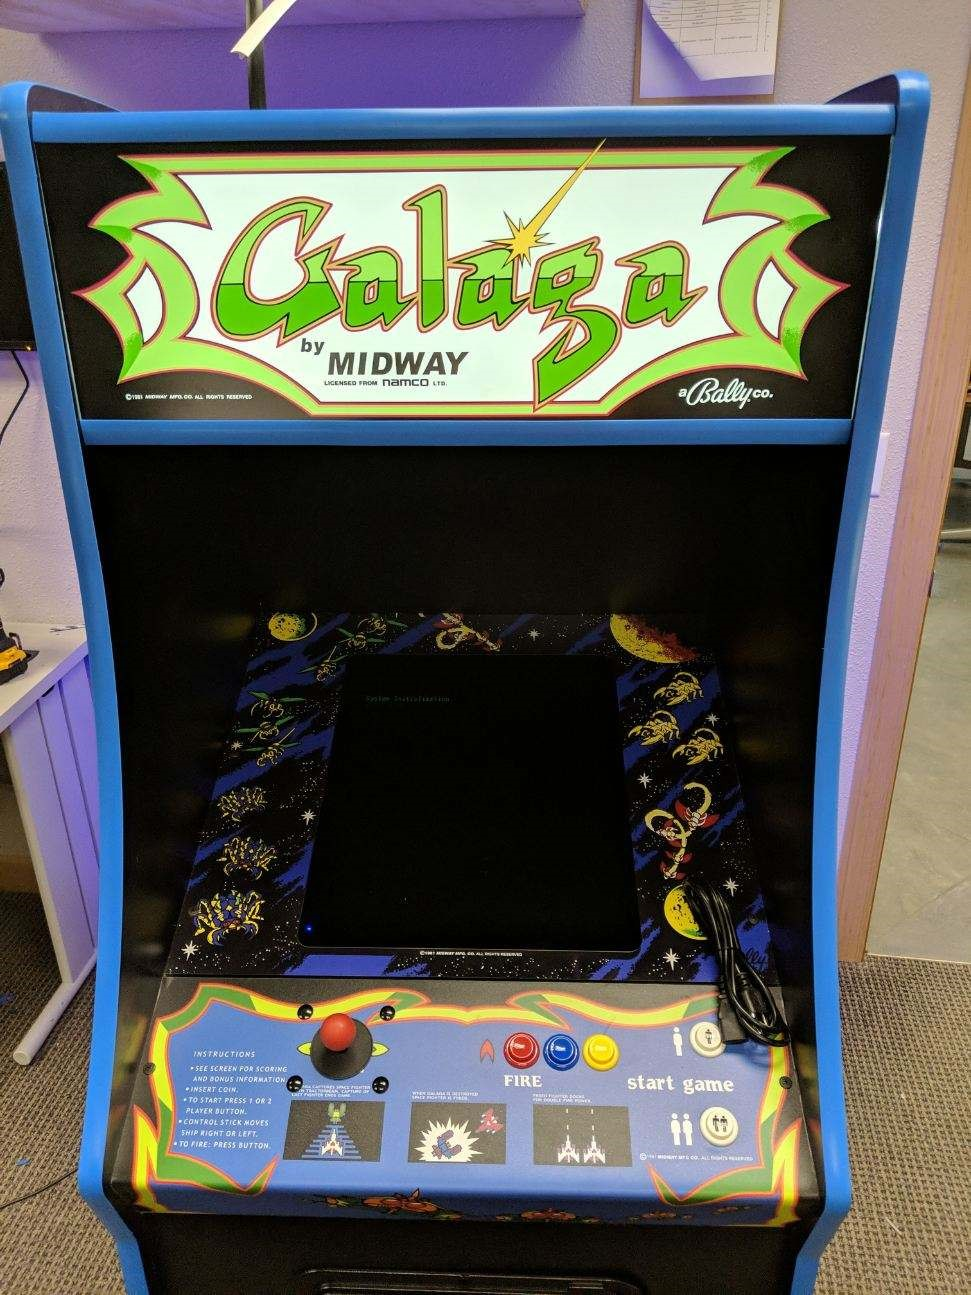 Galaga Full Size Brand New Arcade Top Seller Land Of Oz Arcades